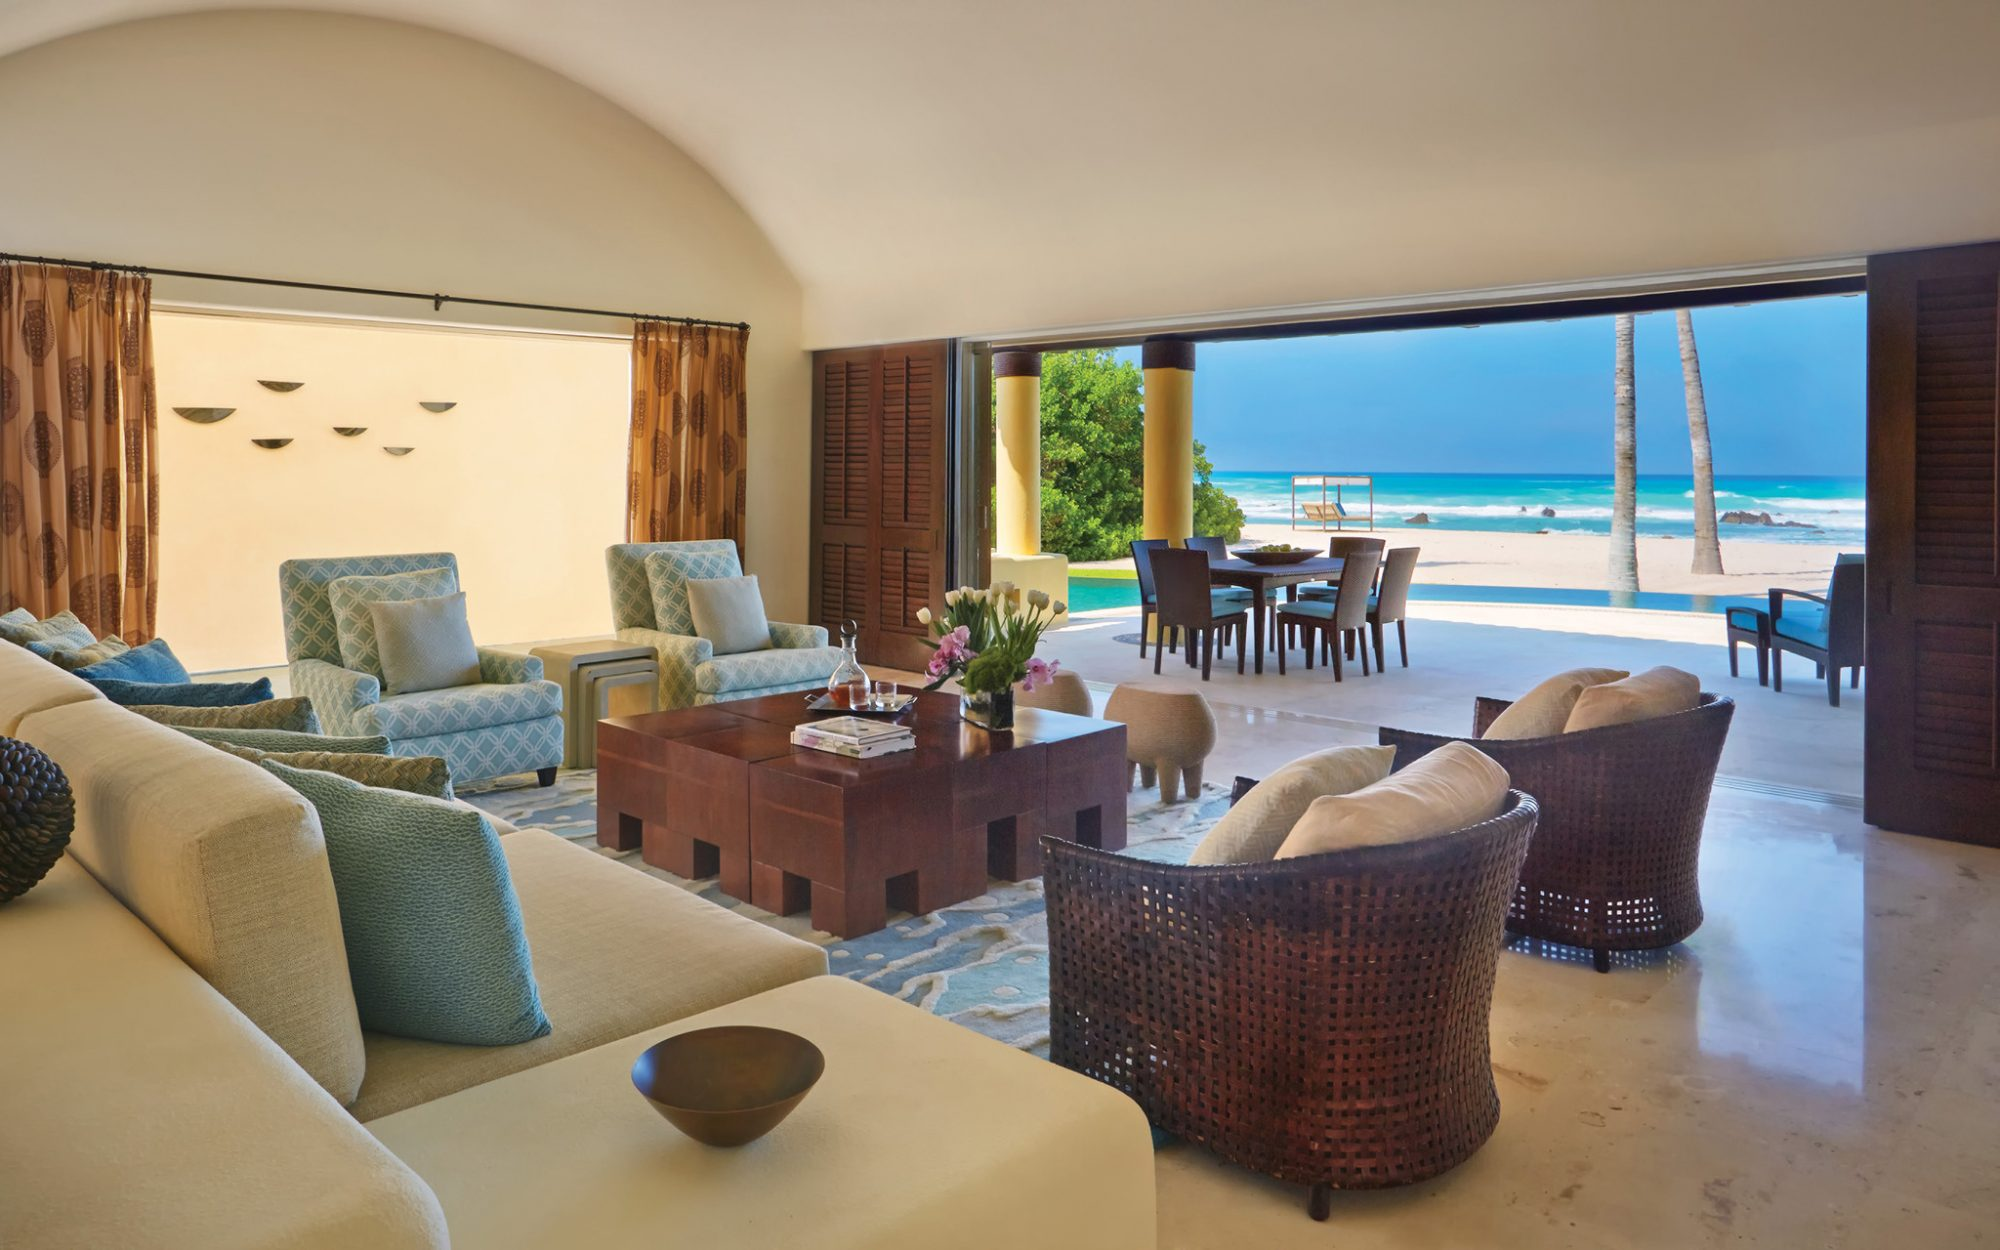 Best Mexico Beach Resorts: Four Seasons Resort, Punta Mita